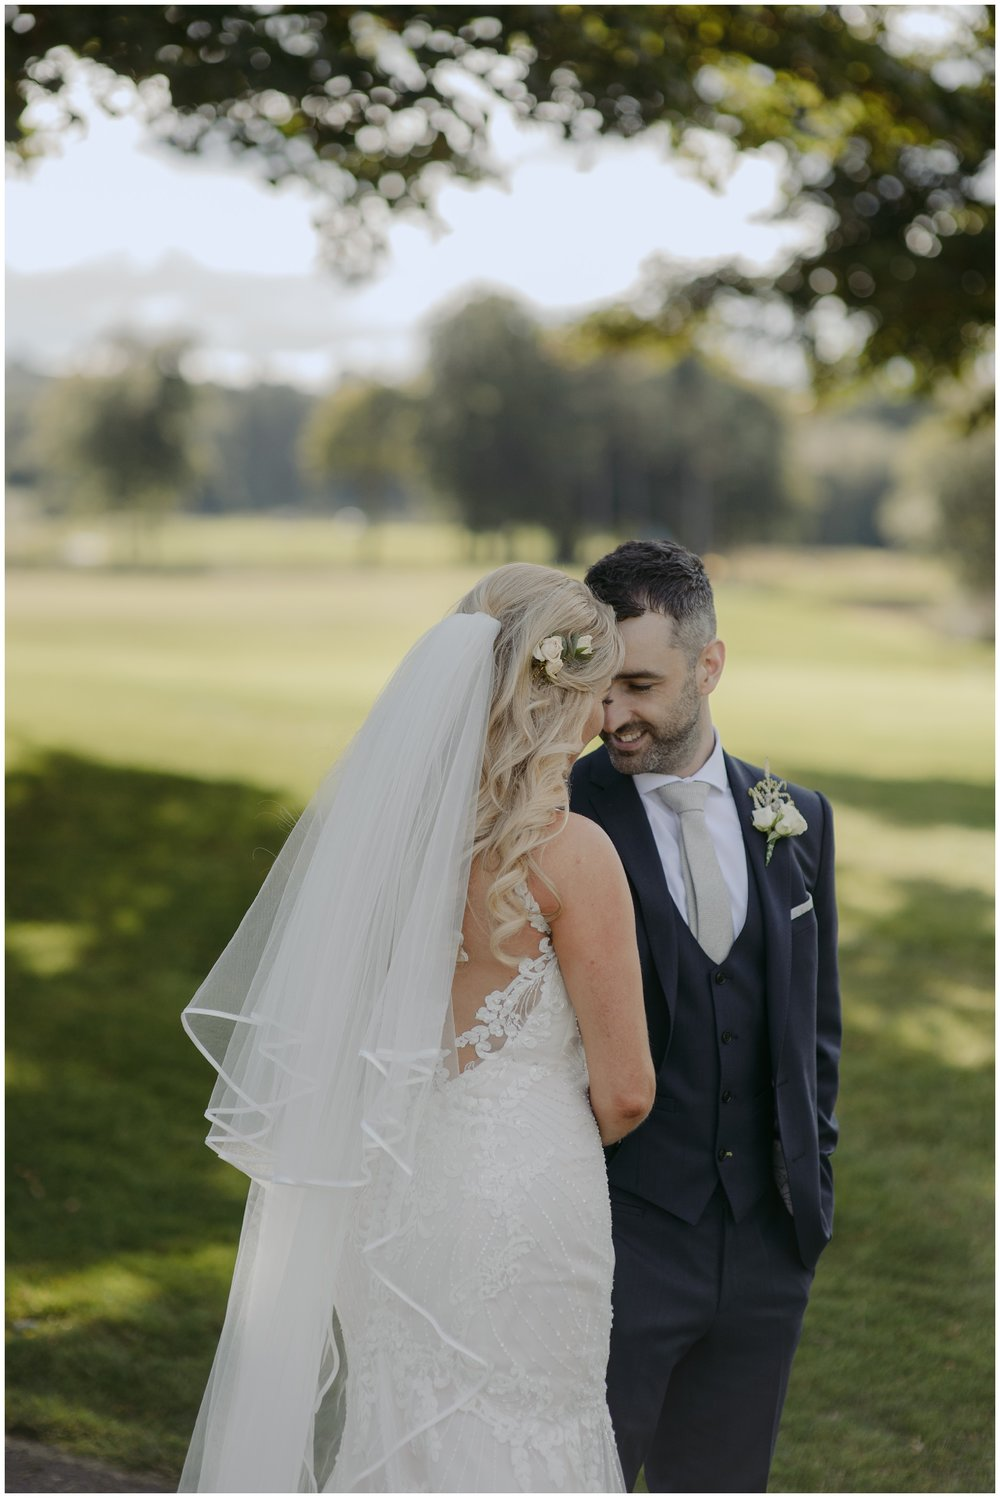 louise_keith_lough_erne_wedding_jude_browne_photography_0057.jpg